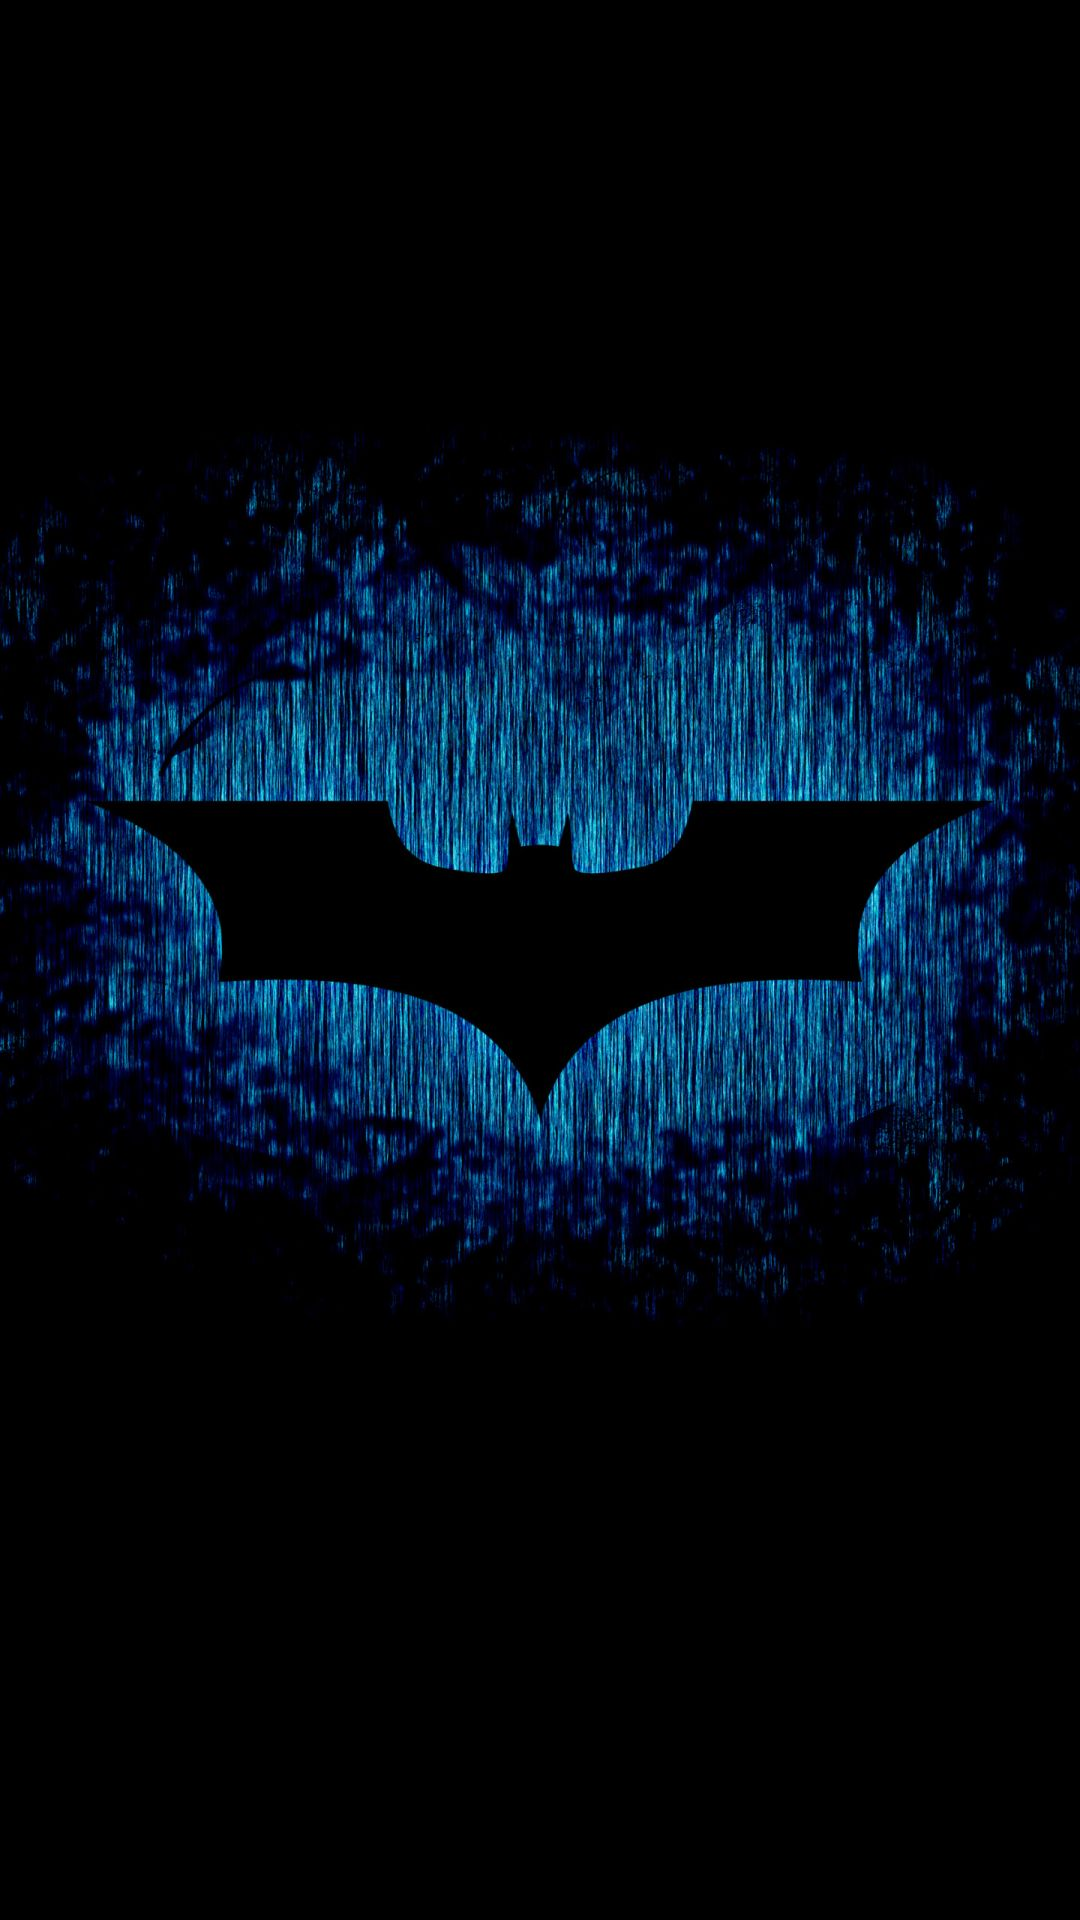 65 4k Batman Android Iphone Desktop Hd Backgrounds Wallpapers 1080p 4k 1440x2560 2020